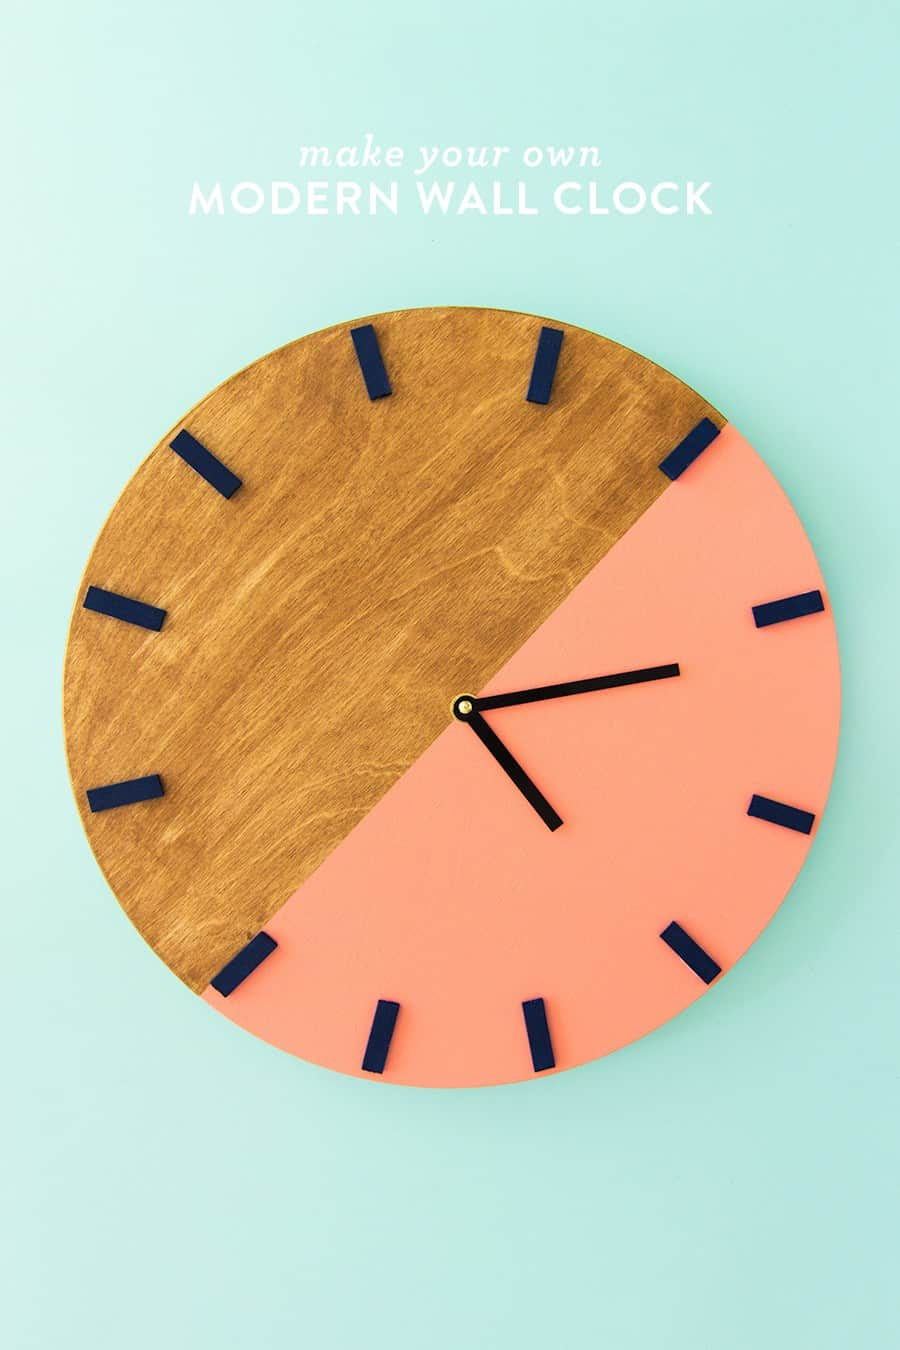 15 Beautiful DIY Wood Clock Ideas in 2021